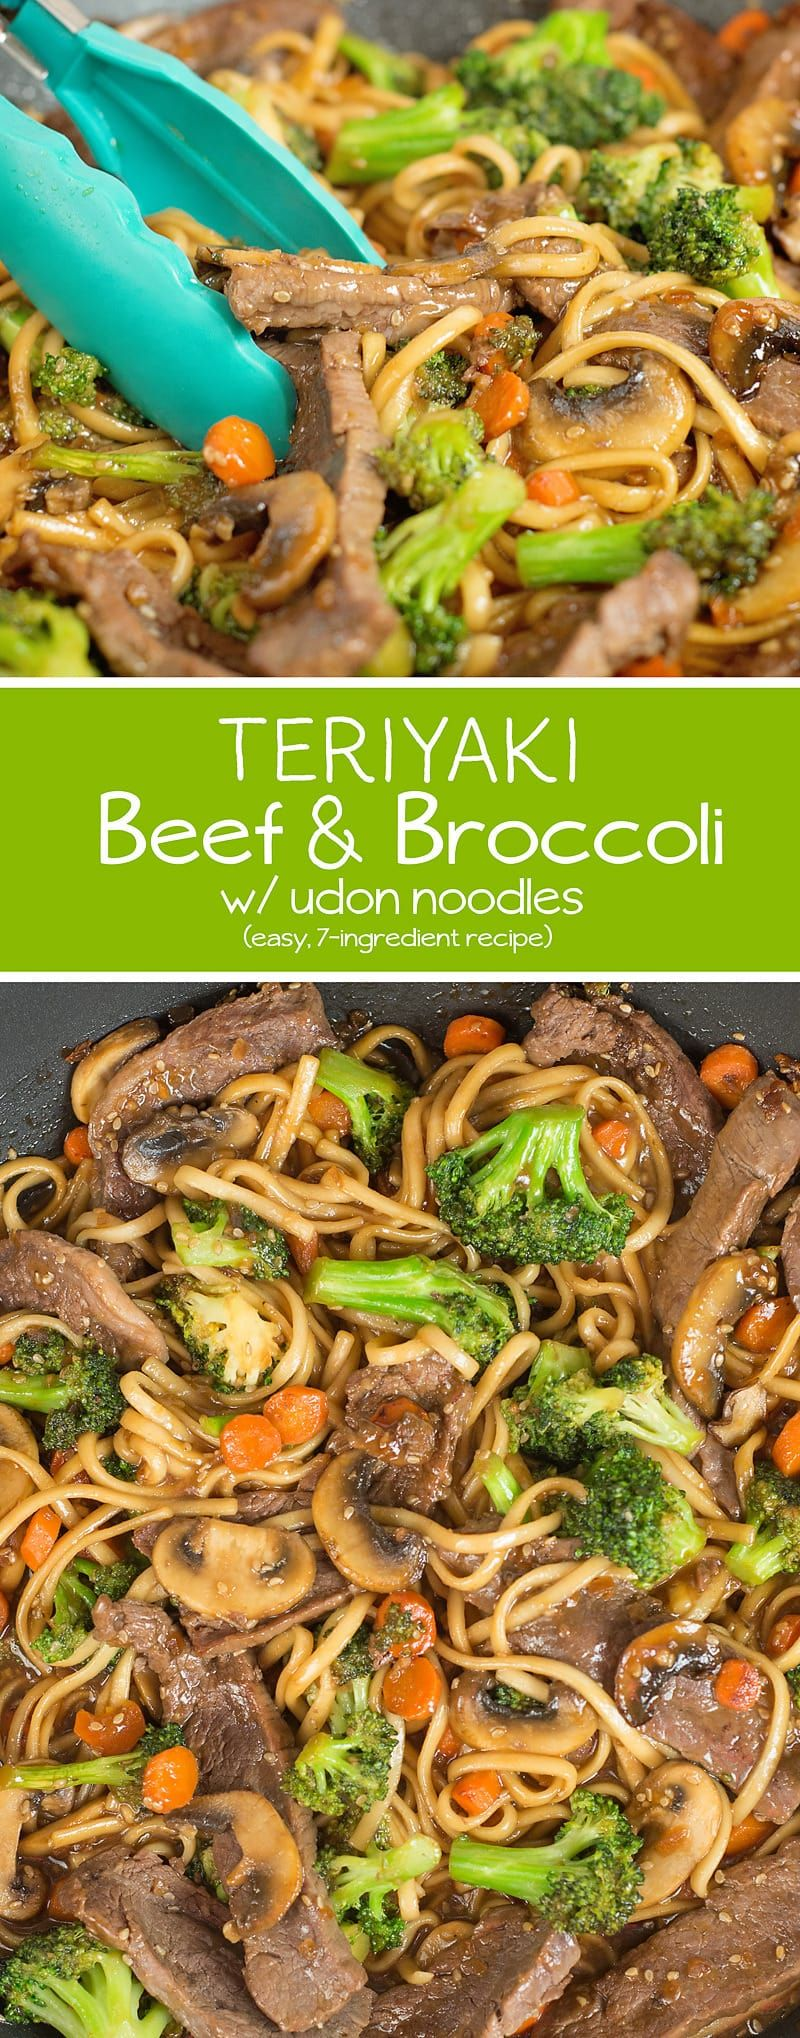 This Teriyaki Beef and Broccoli w/ Udon Noodles is so easy to make and perfect for busy nights! #beefandbroccoli